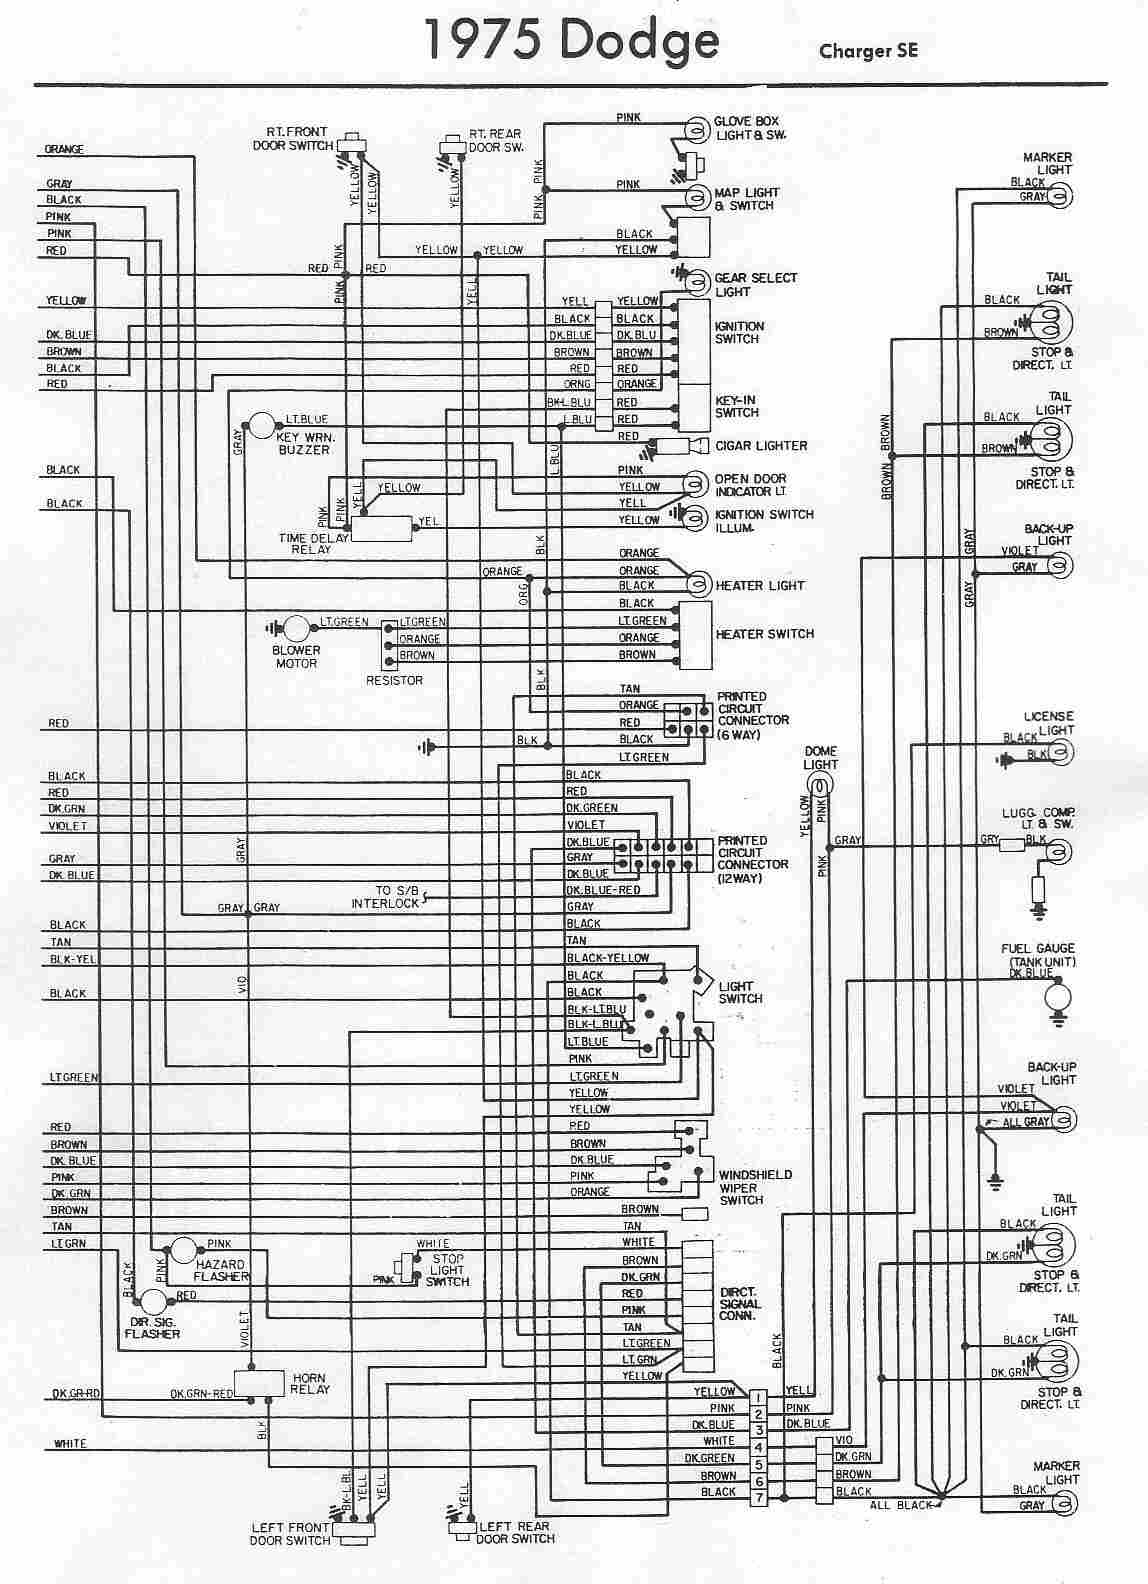 electrical wiring diagram of 1975 dodge charger?t=1508404771 dodge car manuals, wiring diagrams pdf & fault codes daimler sp250 wiring diagram at virtualis.co